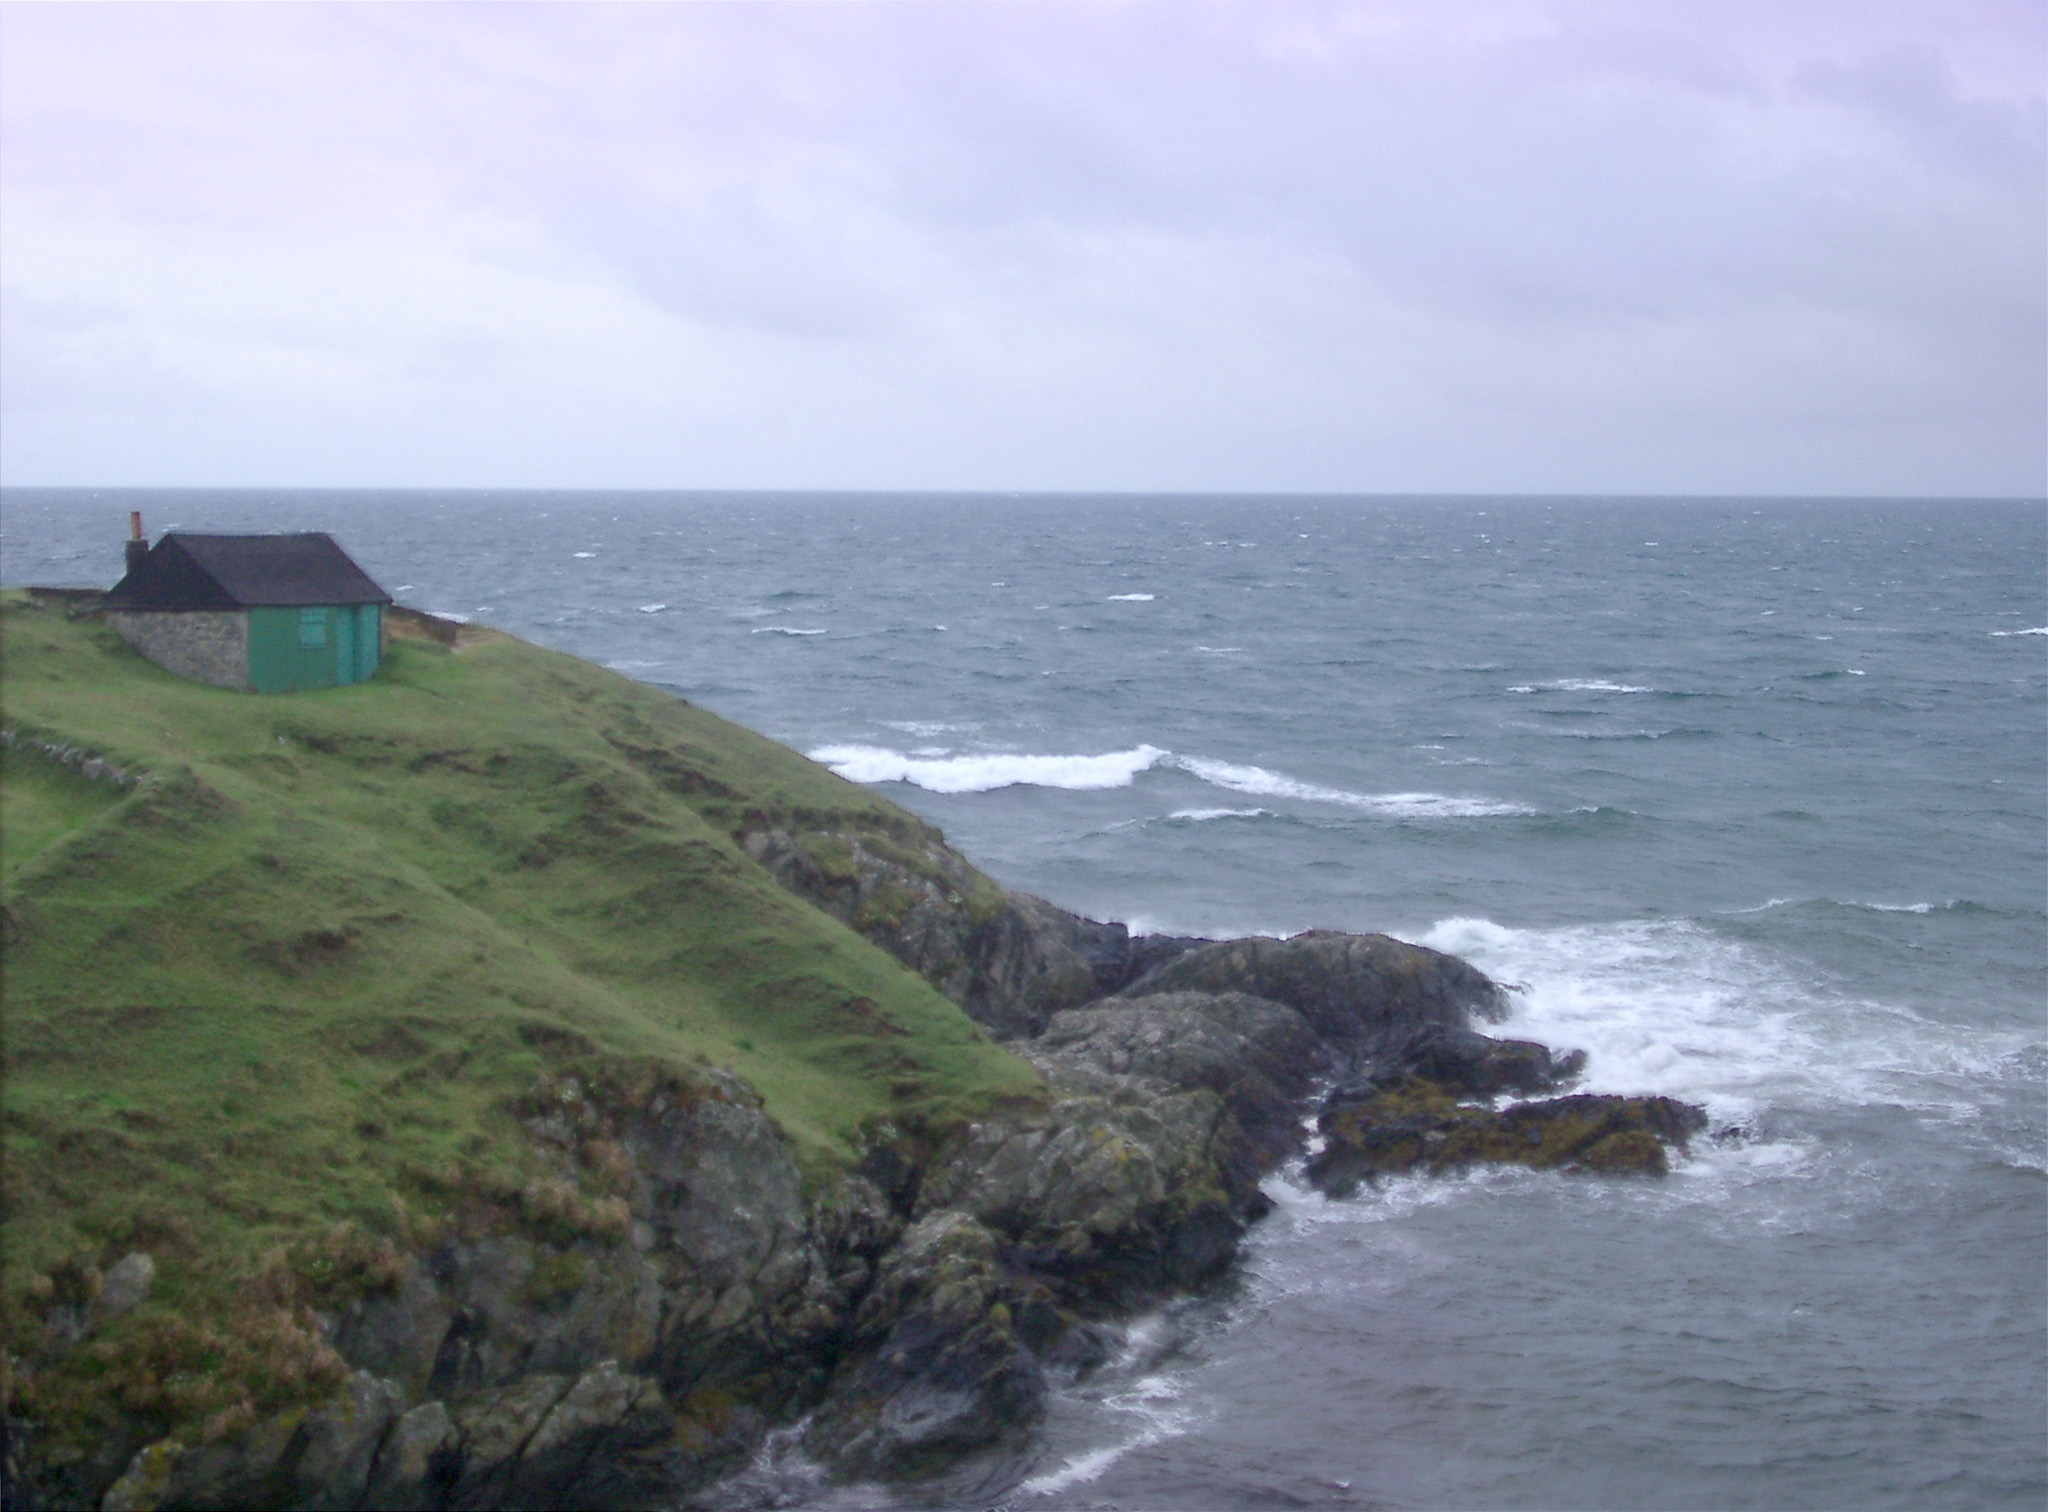 Rocky headland with the roof of a seafront cottage just visible jutting into a calm ocean on an overcast cloudy day